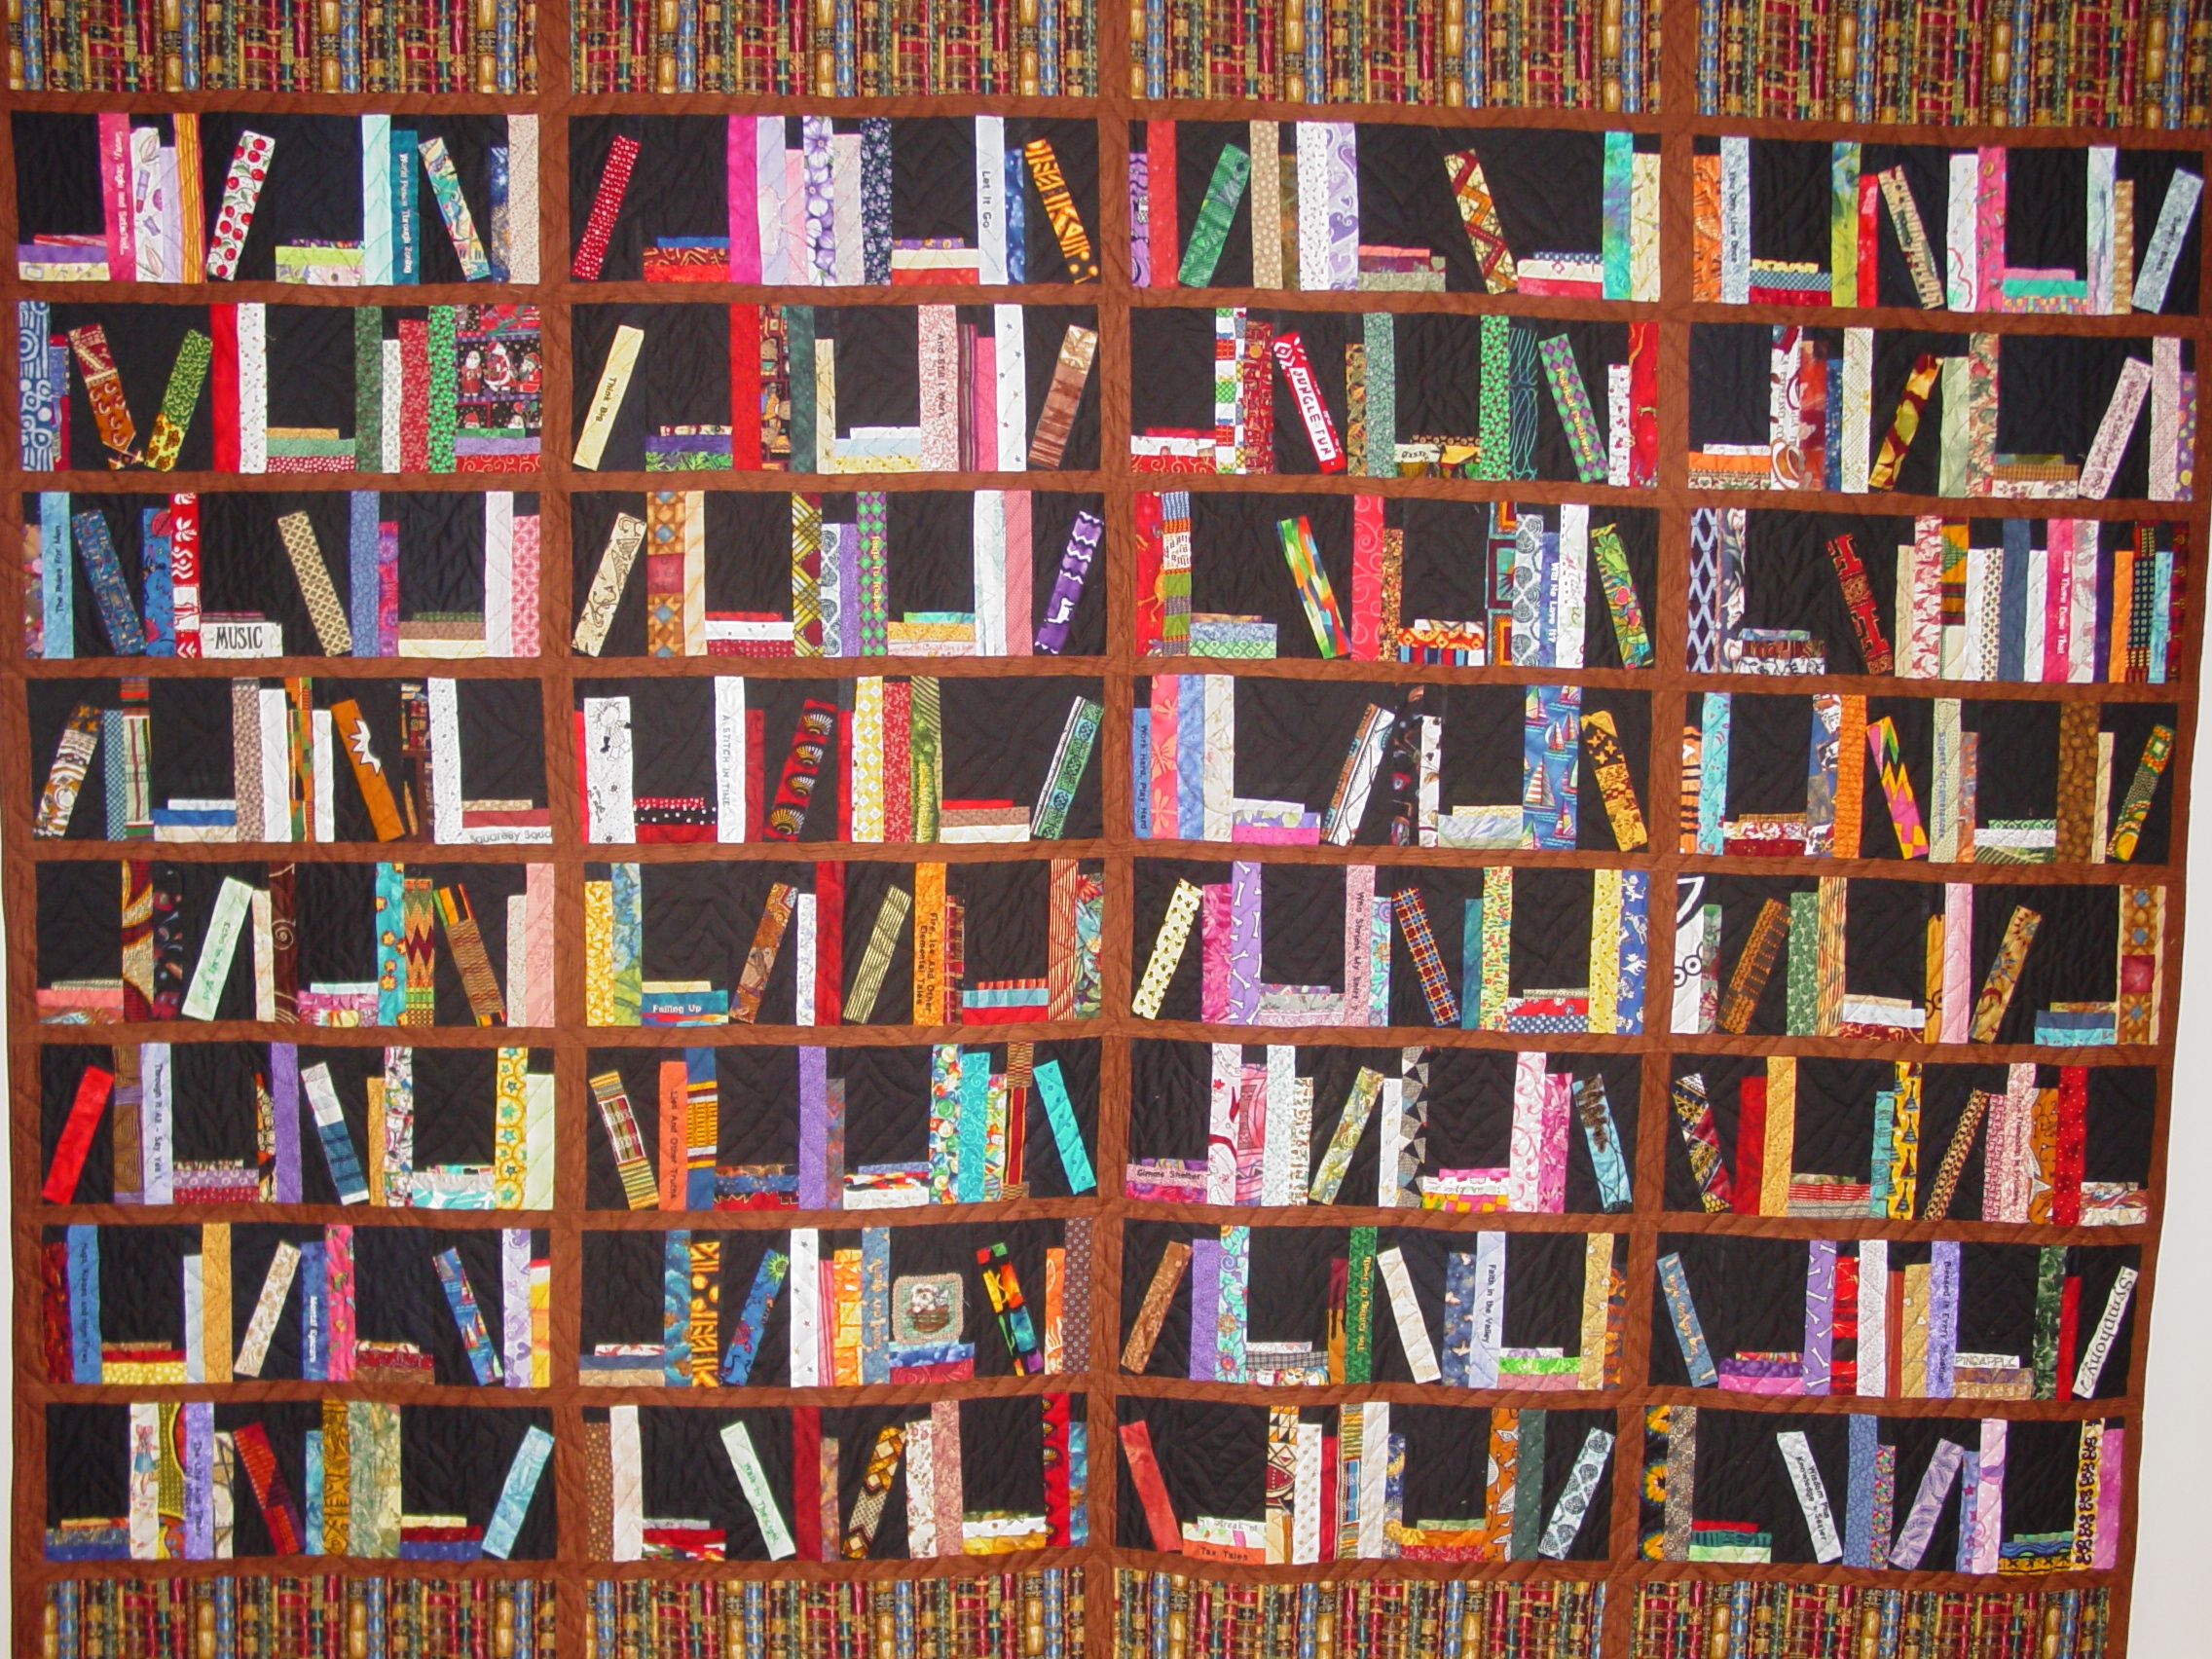 Fulton County Attorney Law Libray, 84 x104 inches, by O.V. Brantley, 2005